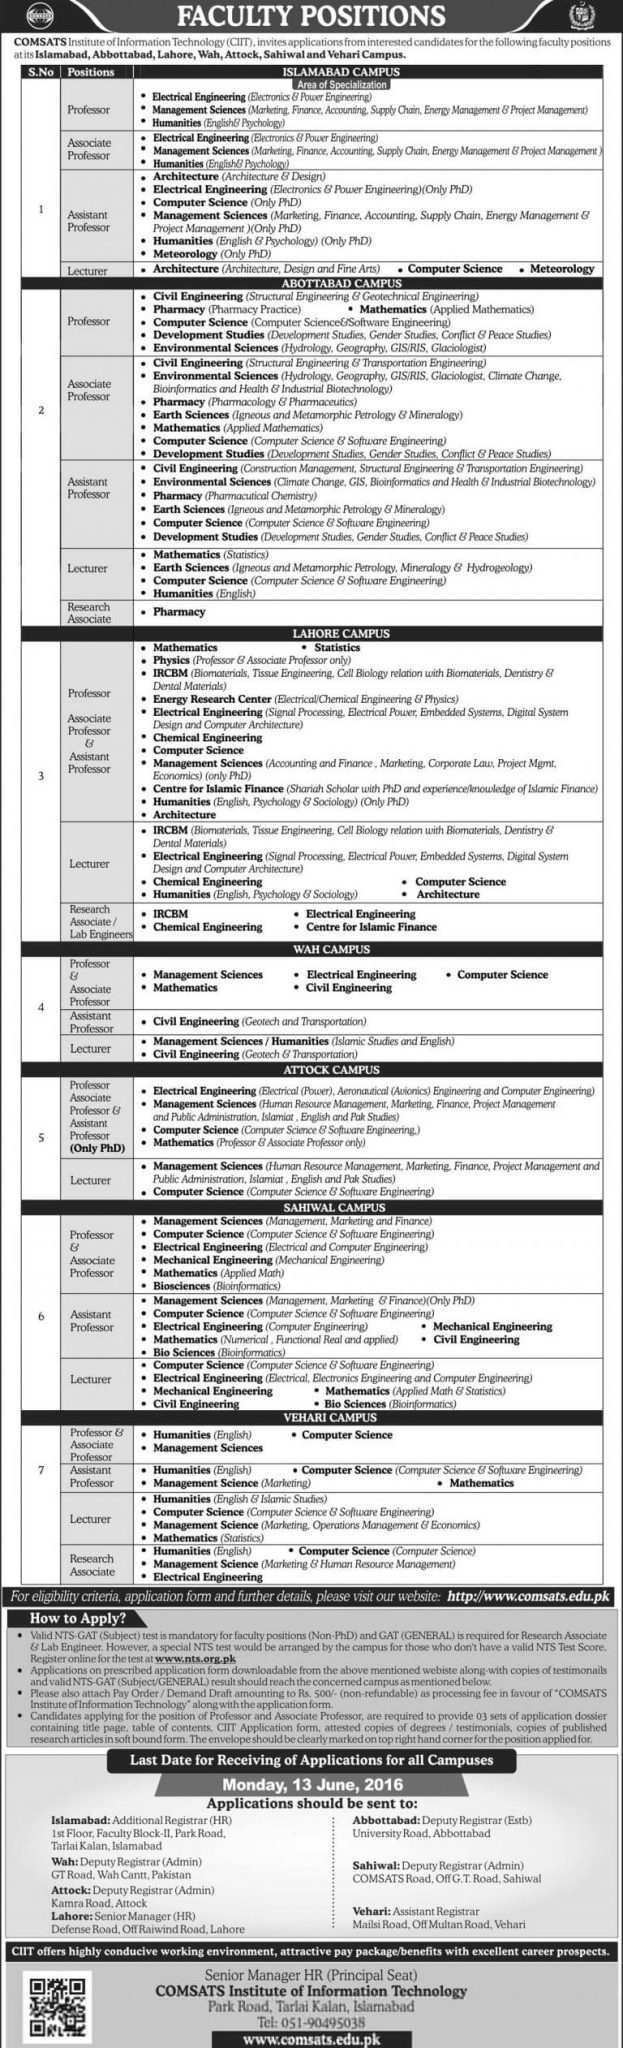 Download Online COMSATS CIIT 2016 Jobs Application Form